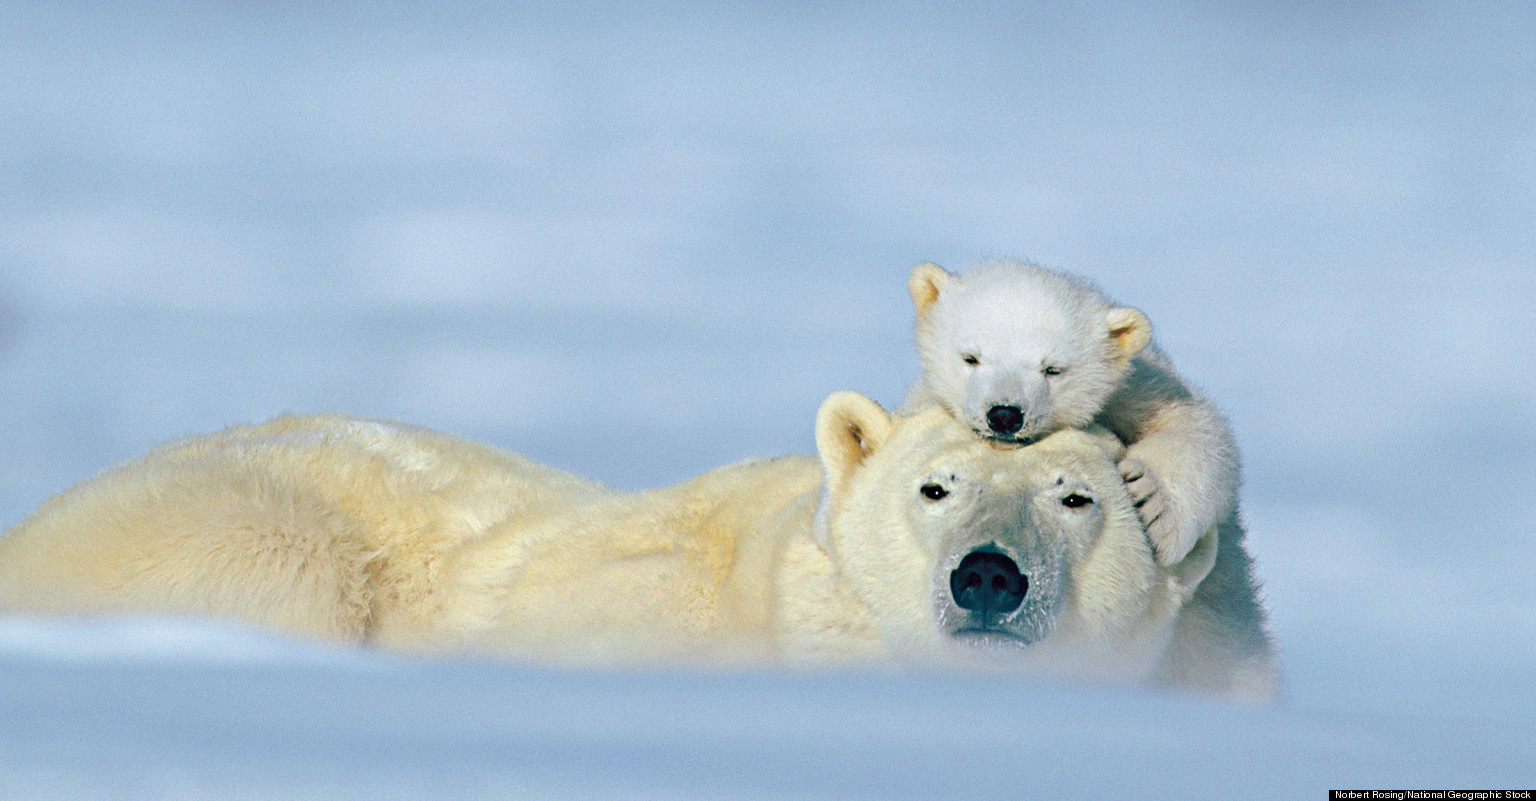 Cute Polar Bear Cubs Wallpaper Animal Love Photos National Geographic Previews Images Of